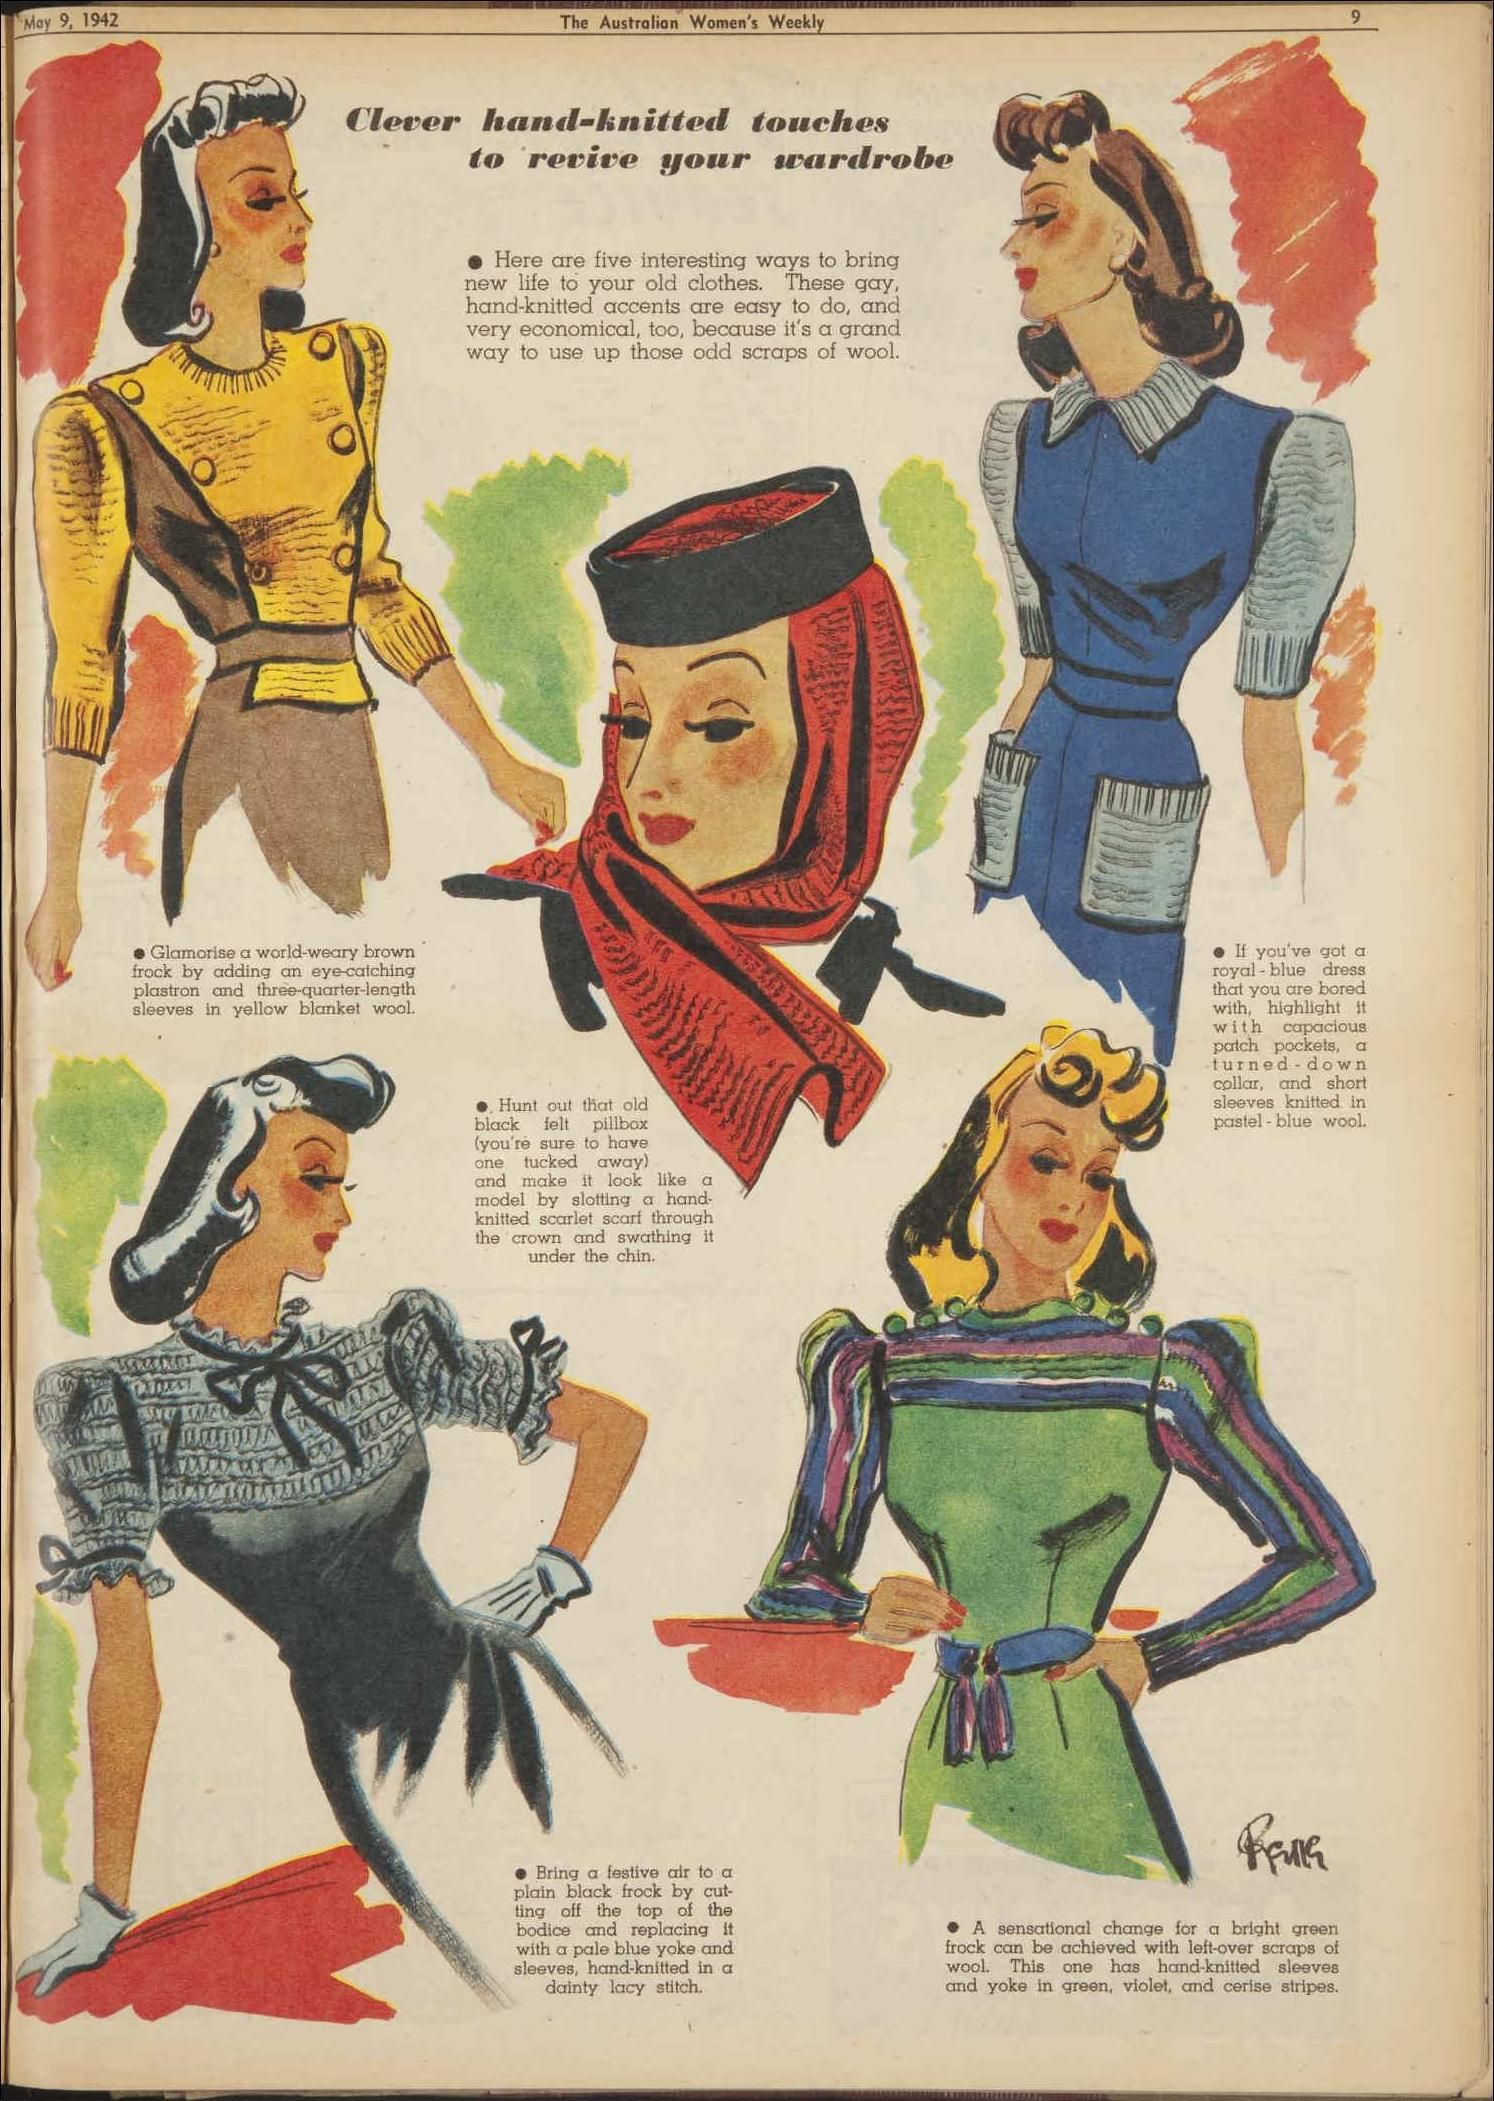 clever hand-knitted touches to revive your warwrobe, May 1942 - The Australian Women's Weekly